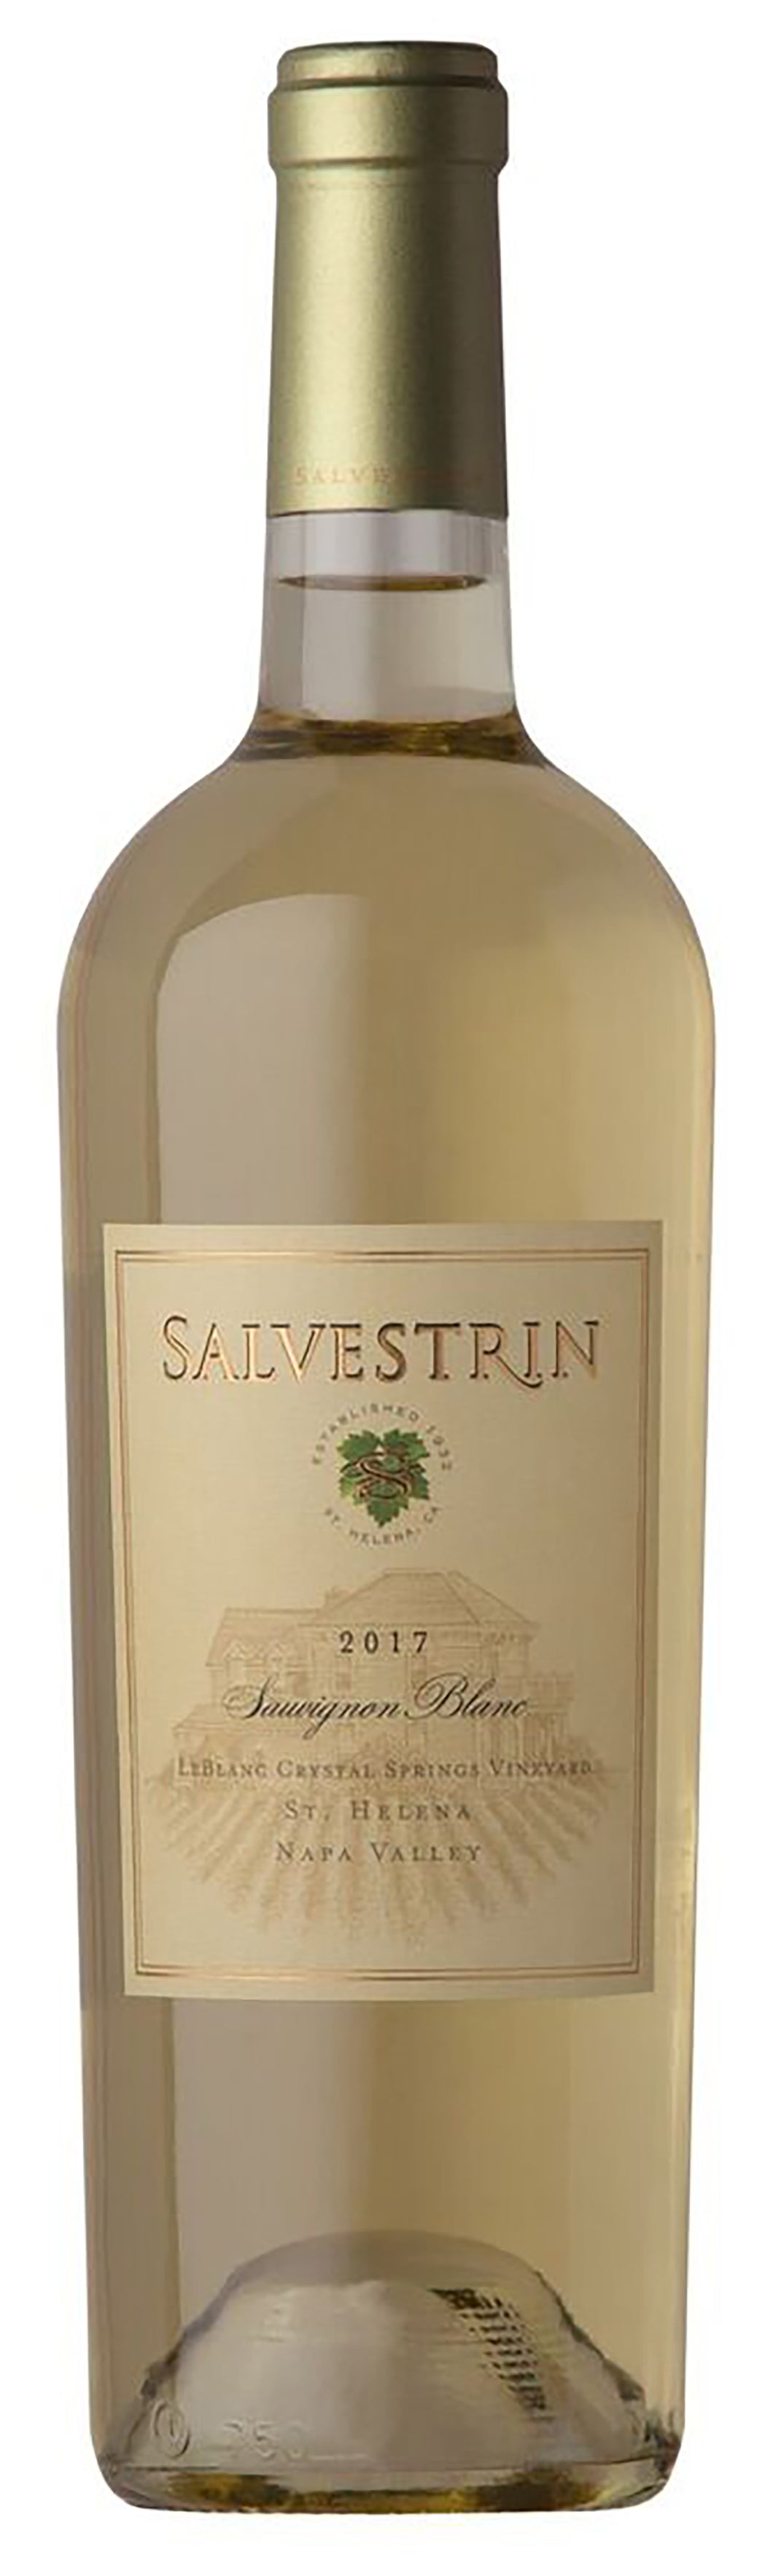 Buy Wines in Singapore - Salvestrin Sauvignon Blanc